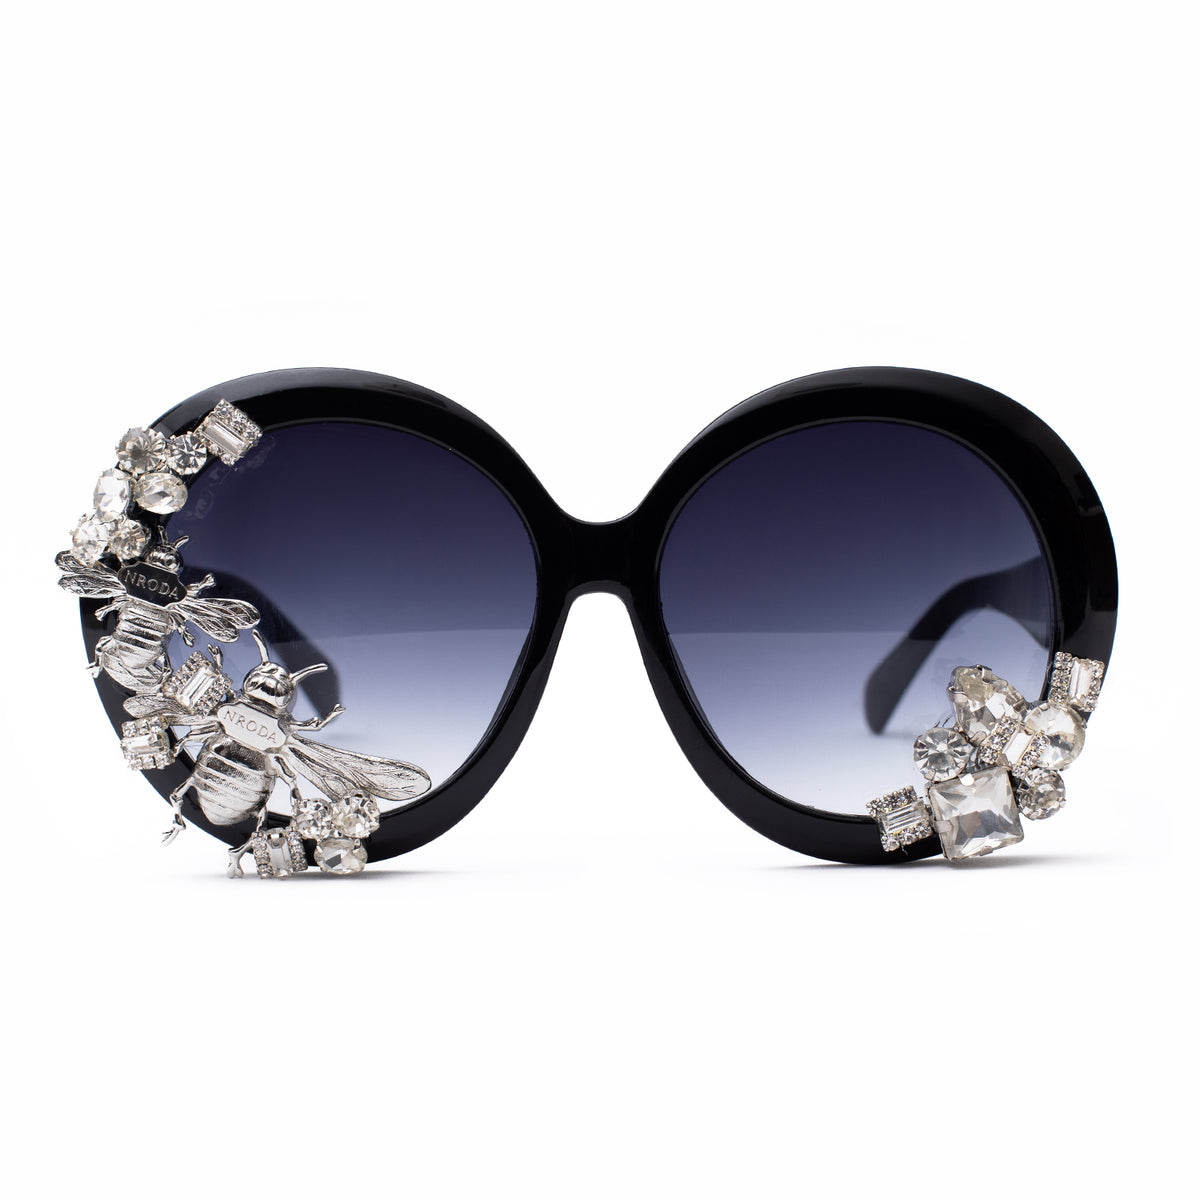 Prosperity Bee Sunnies  SUNNIES + OPTICS Sunglasses Collection, Tnemnroda man- NRODA